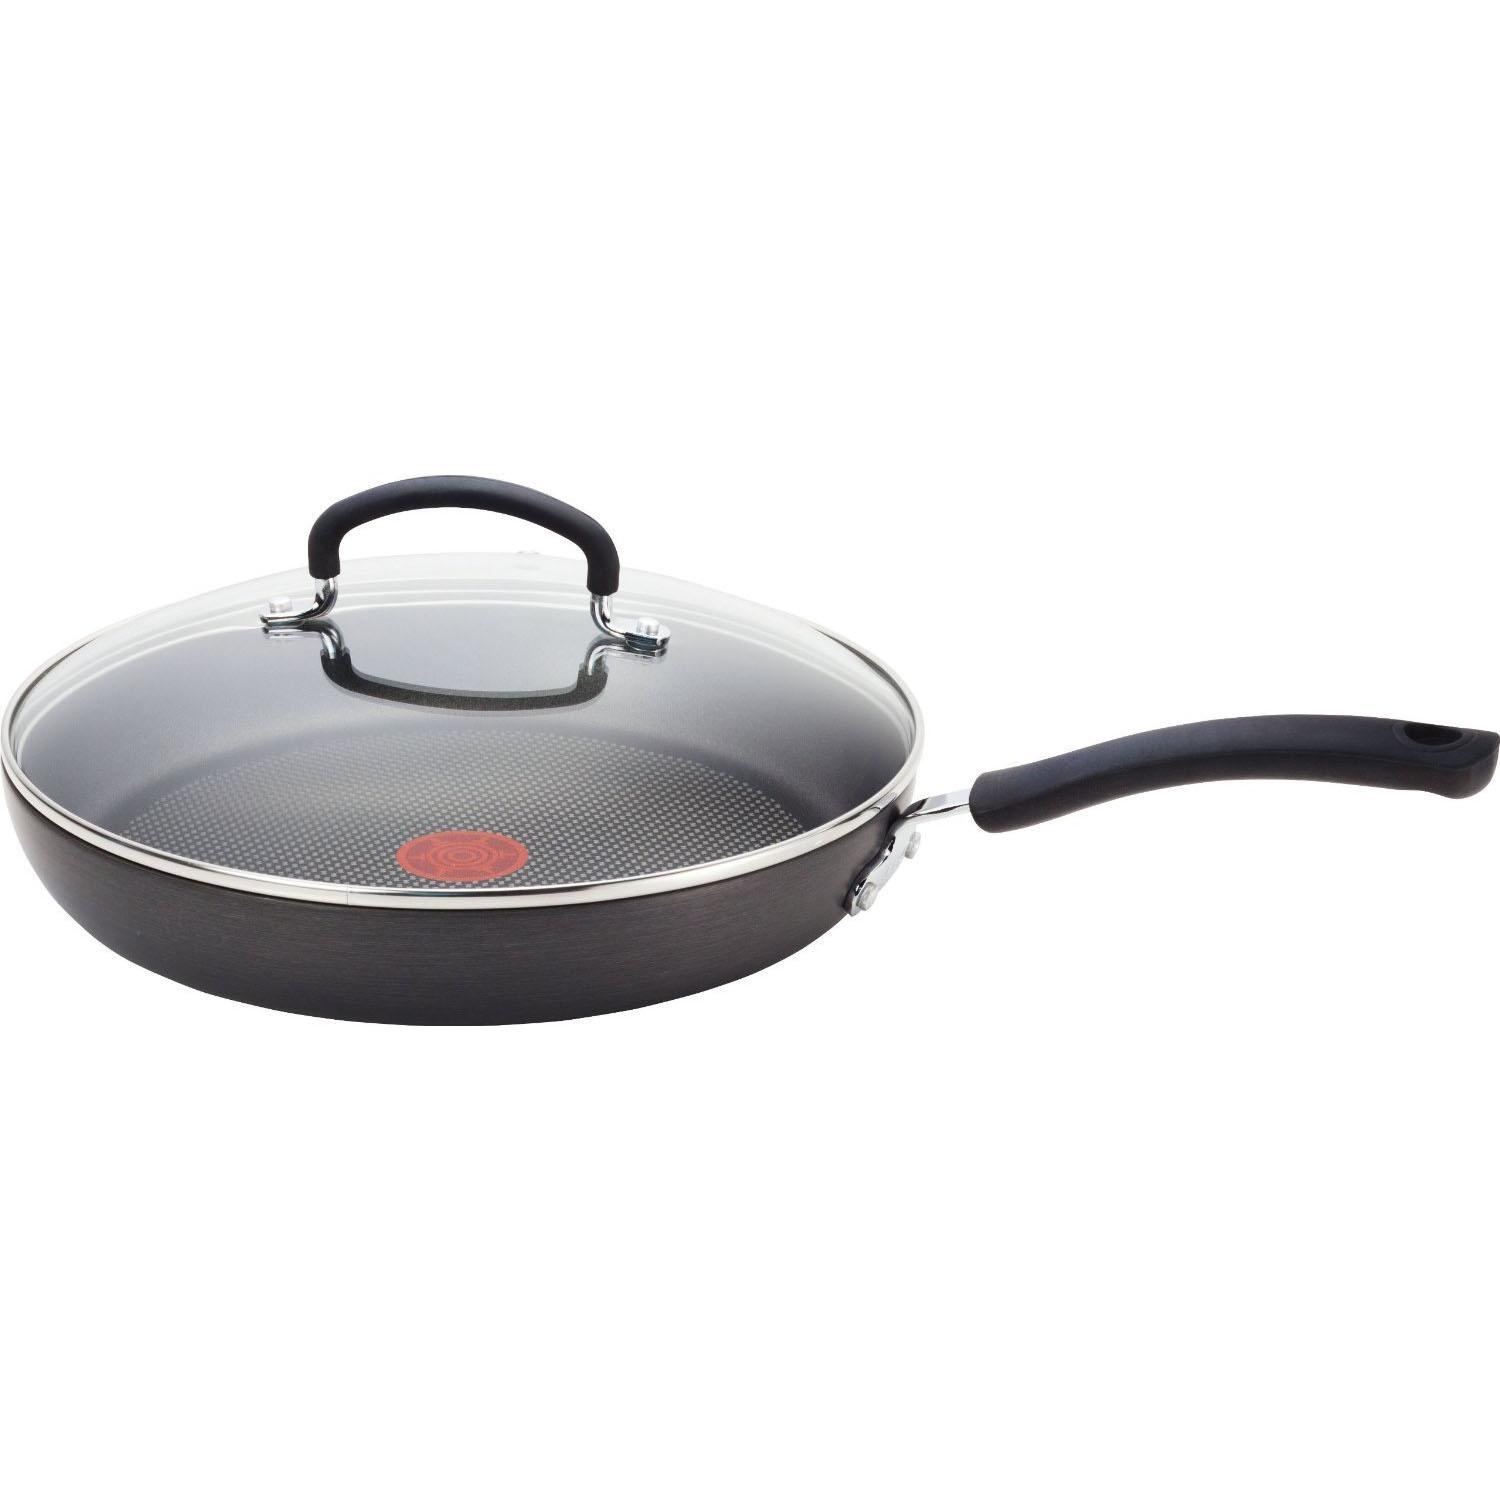 T-fal Ultimate Hard Titanium Nonstick 12in Cookware